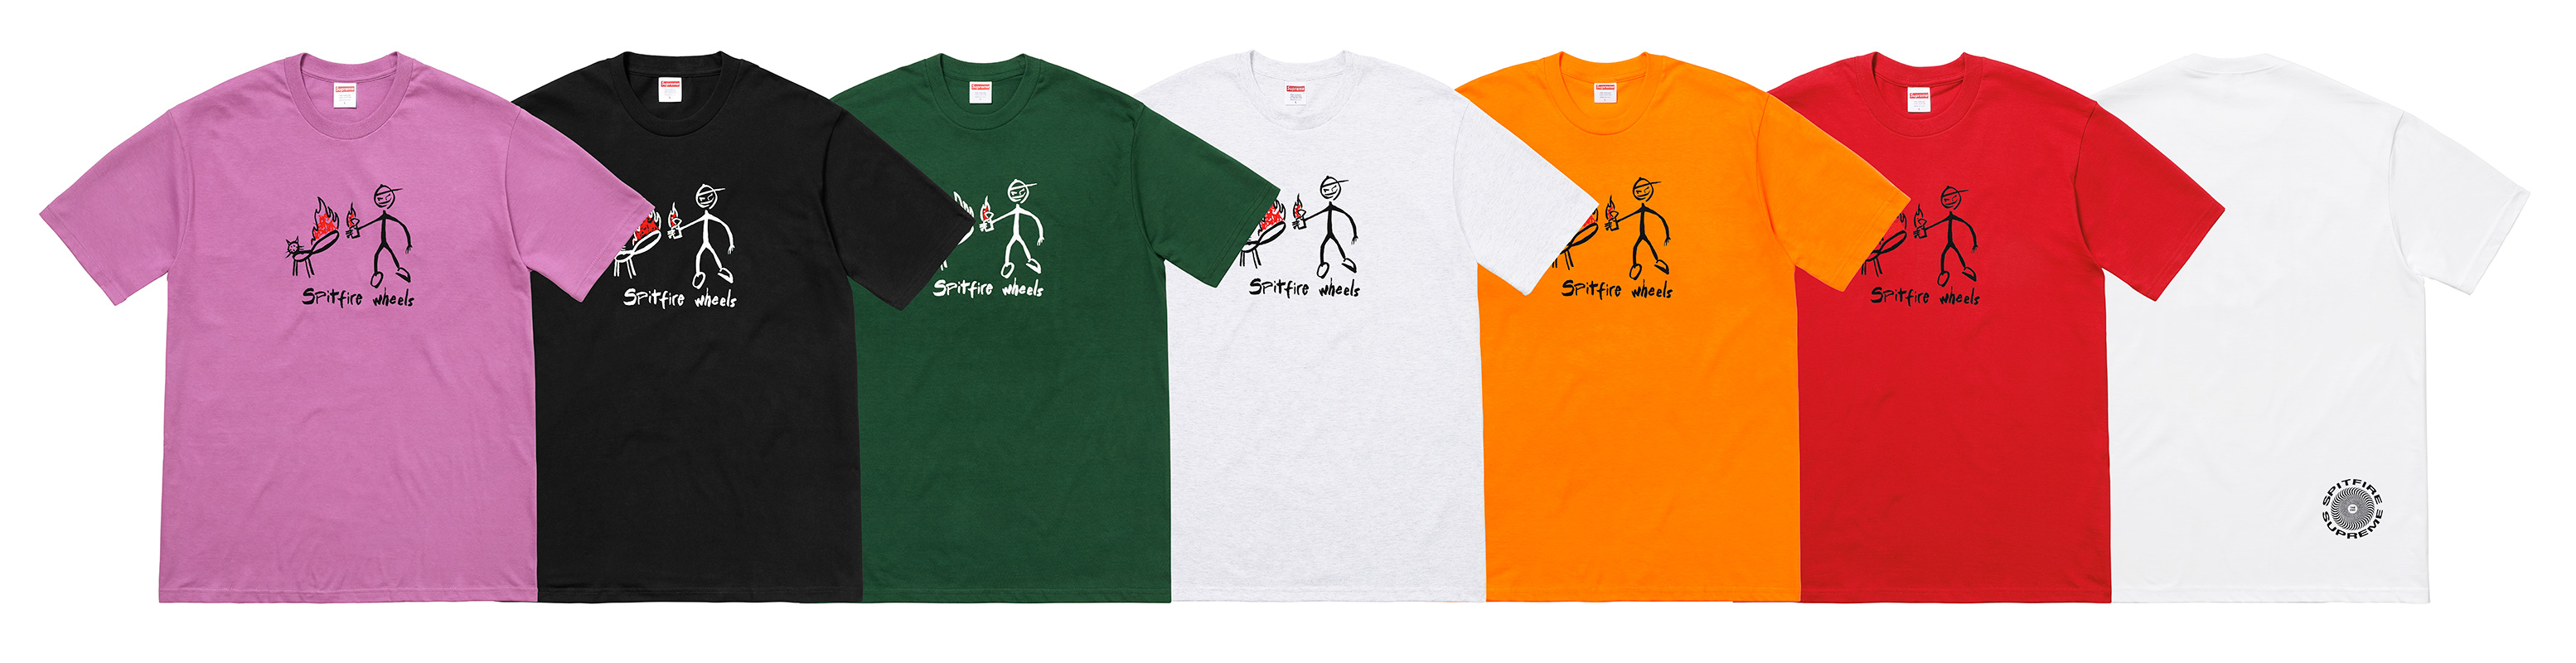 41a91fd15c5 Supreme Links with Spitfire for a Spring 2018 Capsule Collection